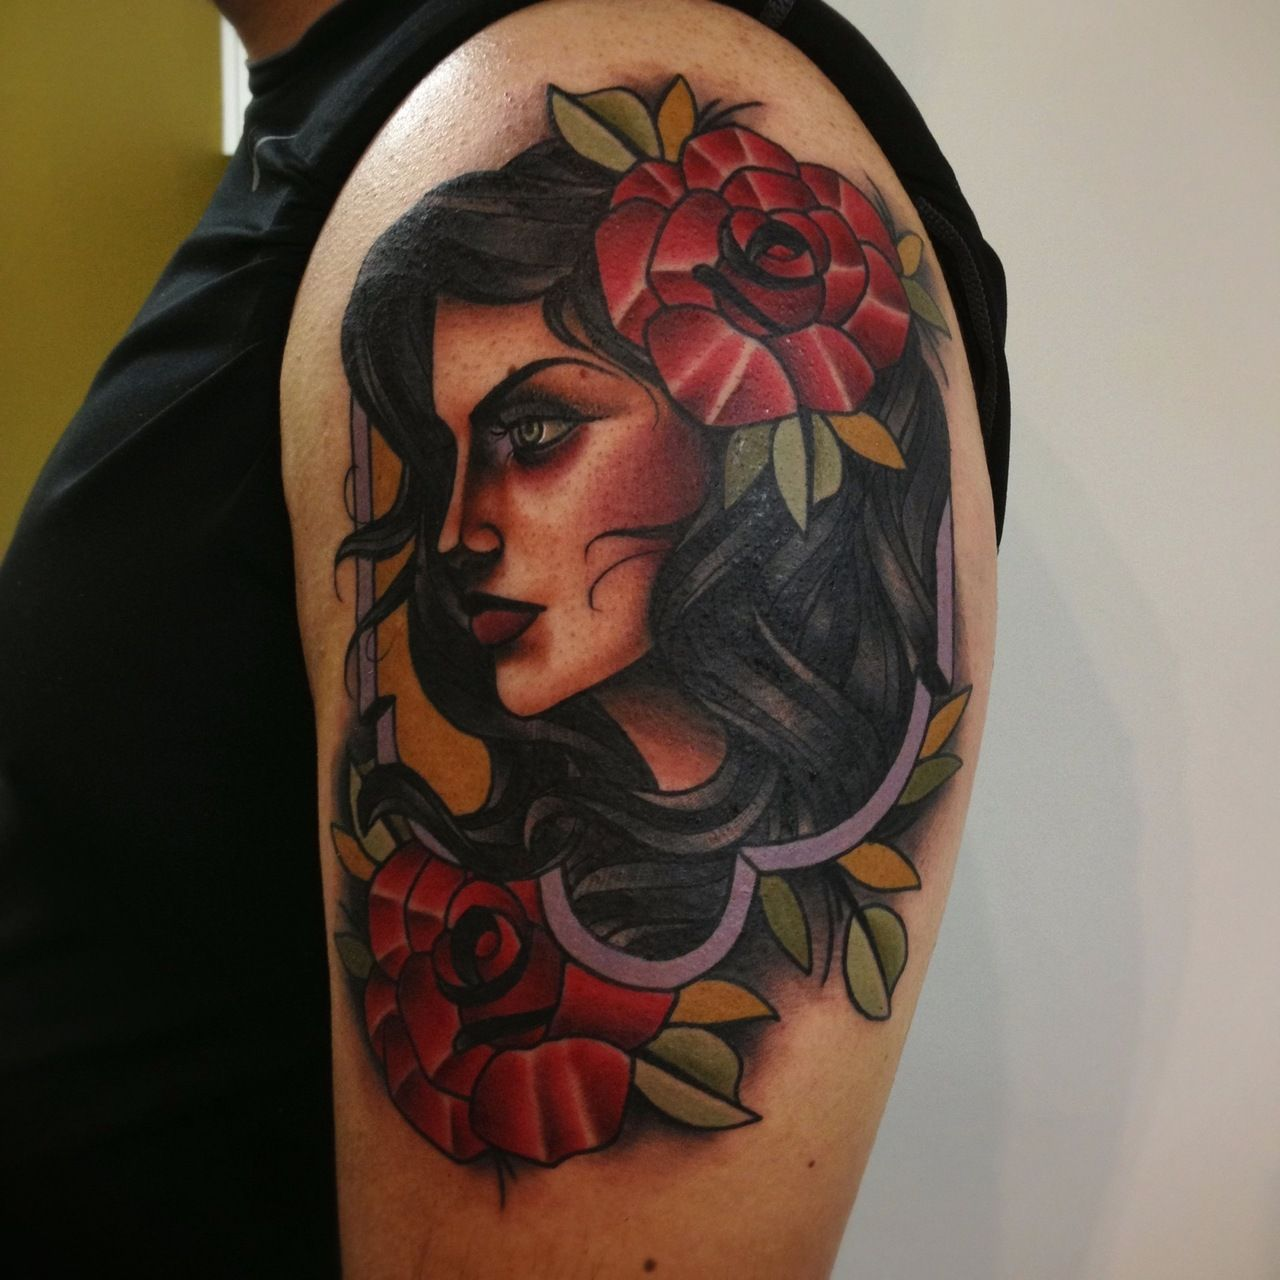 Watercolor tattoo artists in houston texas - Done By Abel Sanchez At Red Dagger Tattoo Studio In Houston Tx Instagram